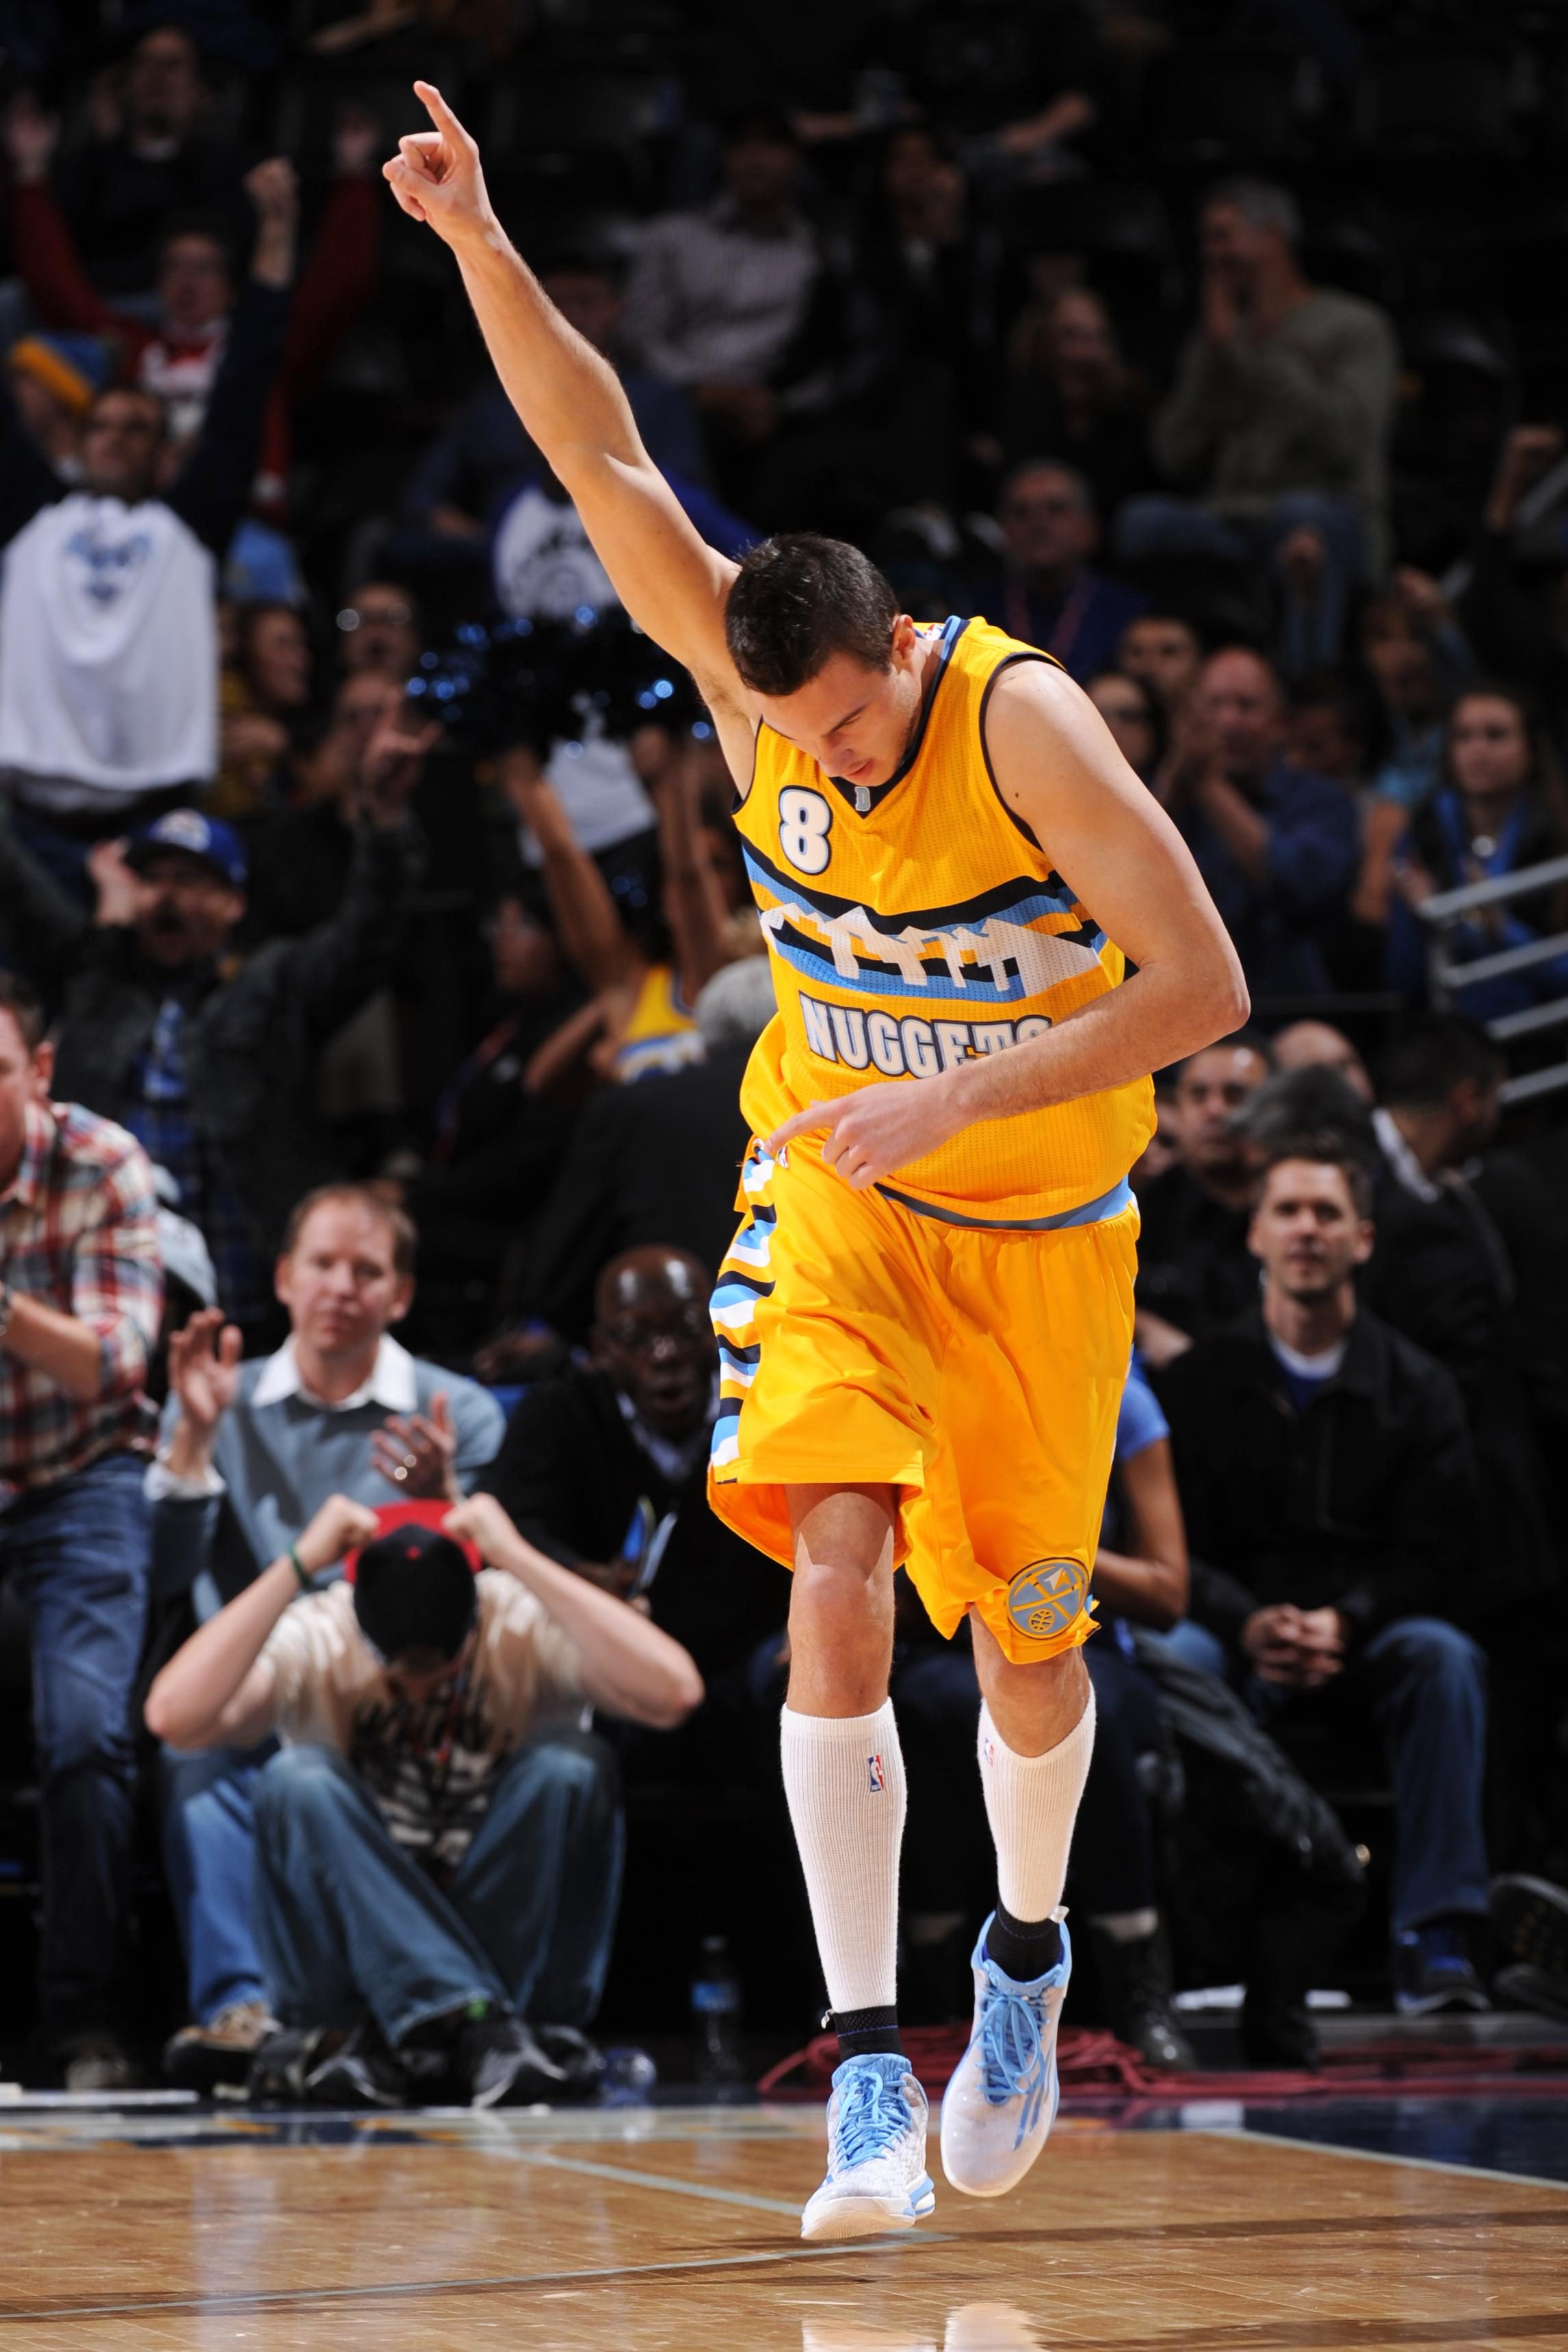 Nuggets hang on to beat Clippers 109-106